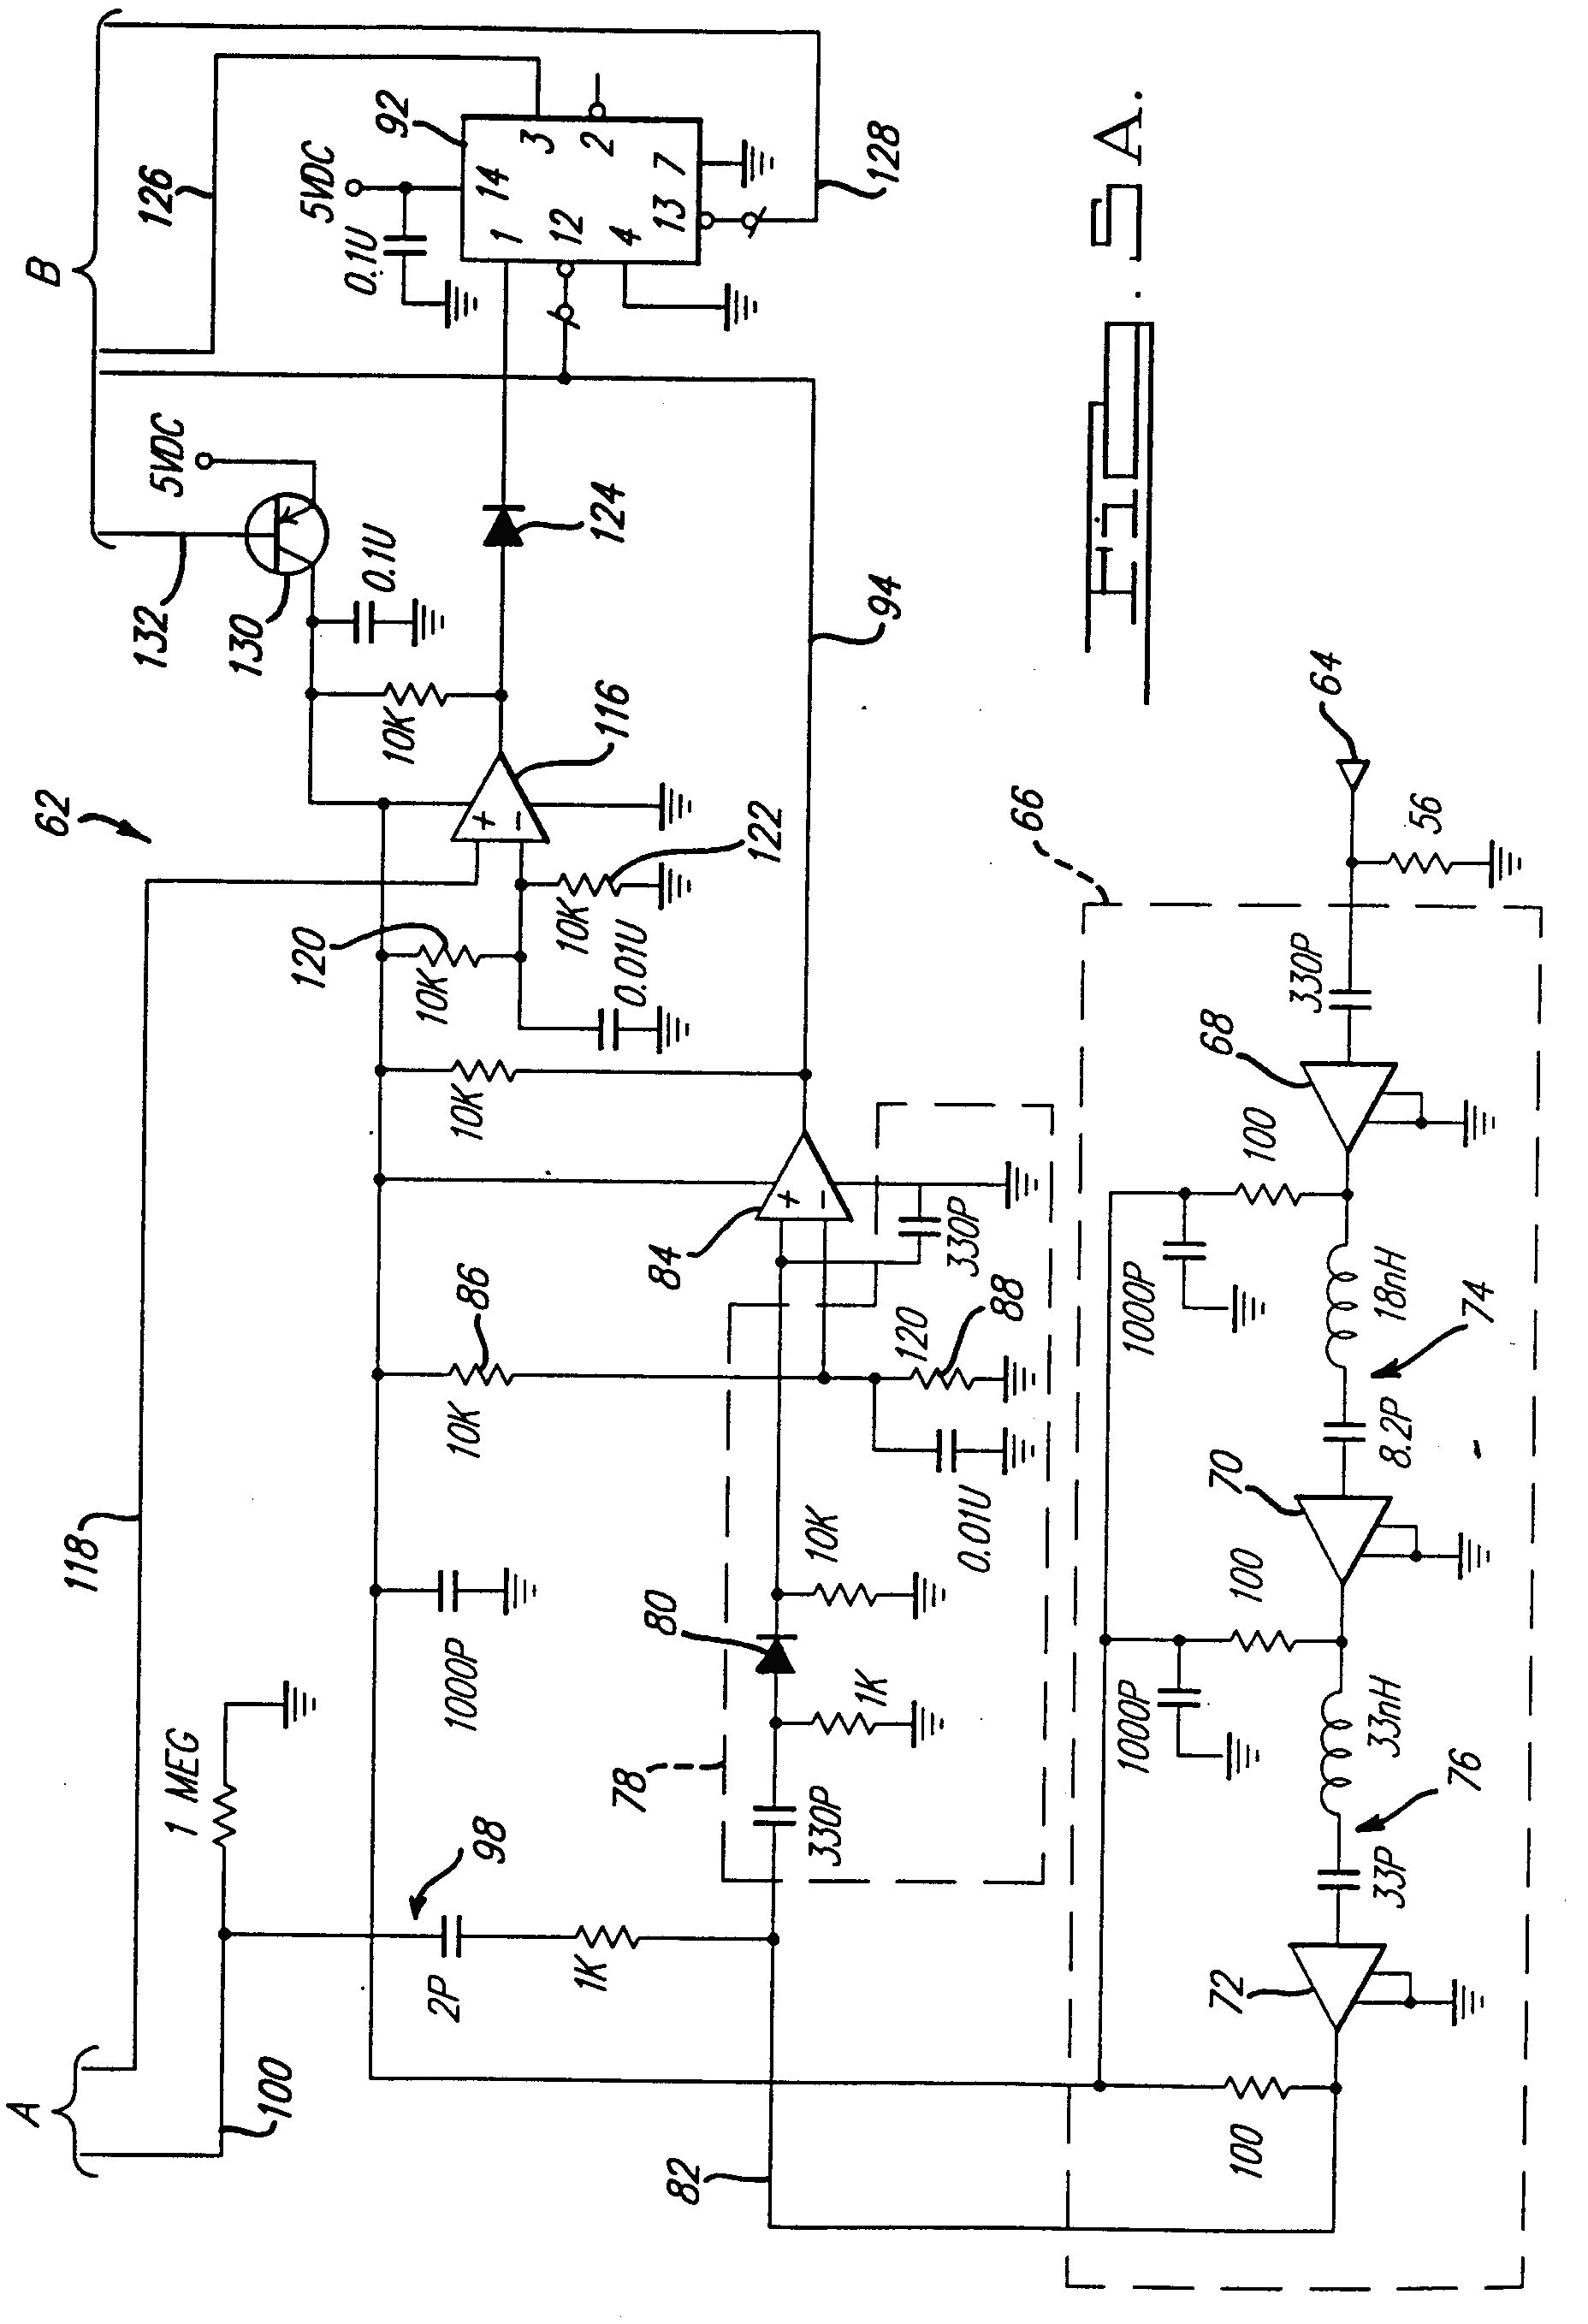 Wiring Diagrams For A H 50 11 Lift Master Diagram Data Gate Logic Symbols Free Download Schematic Library Garage Door With Plc